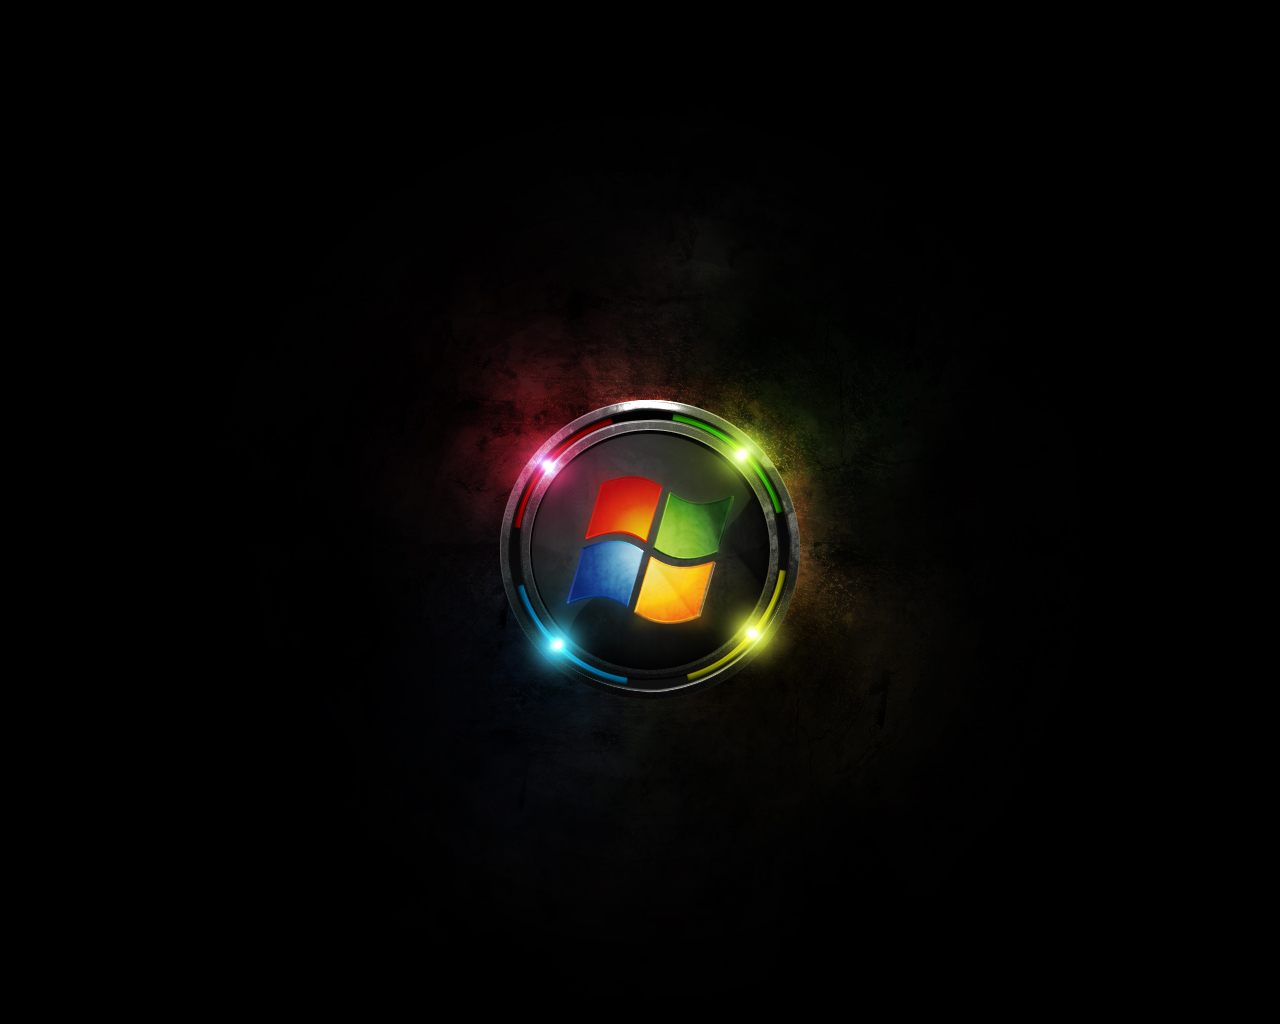 Windows Black Wallpaper HD Wallpaper 3D Abstract Wallpapers 1280x1024